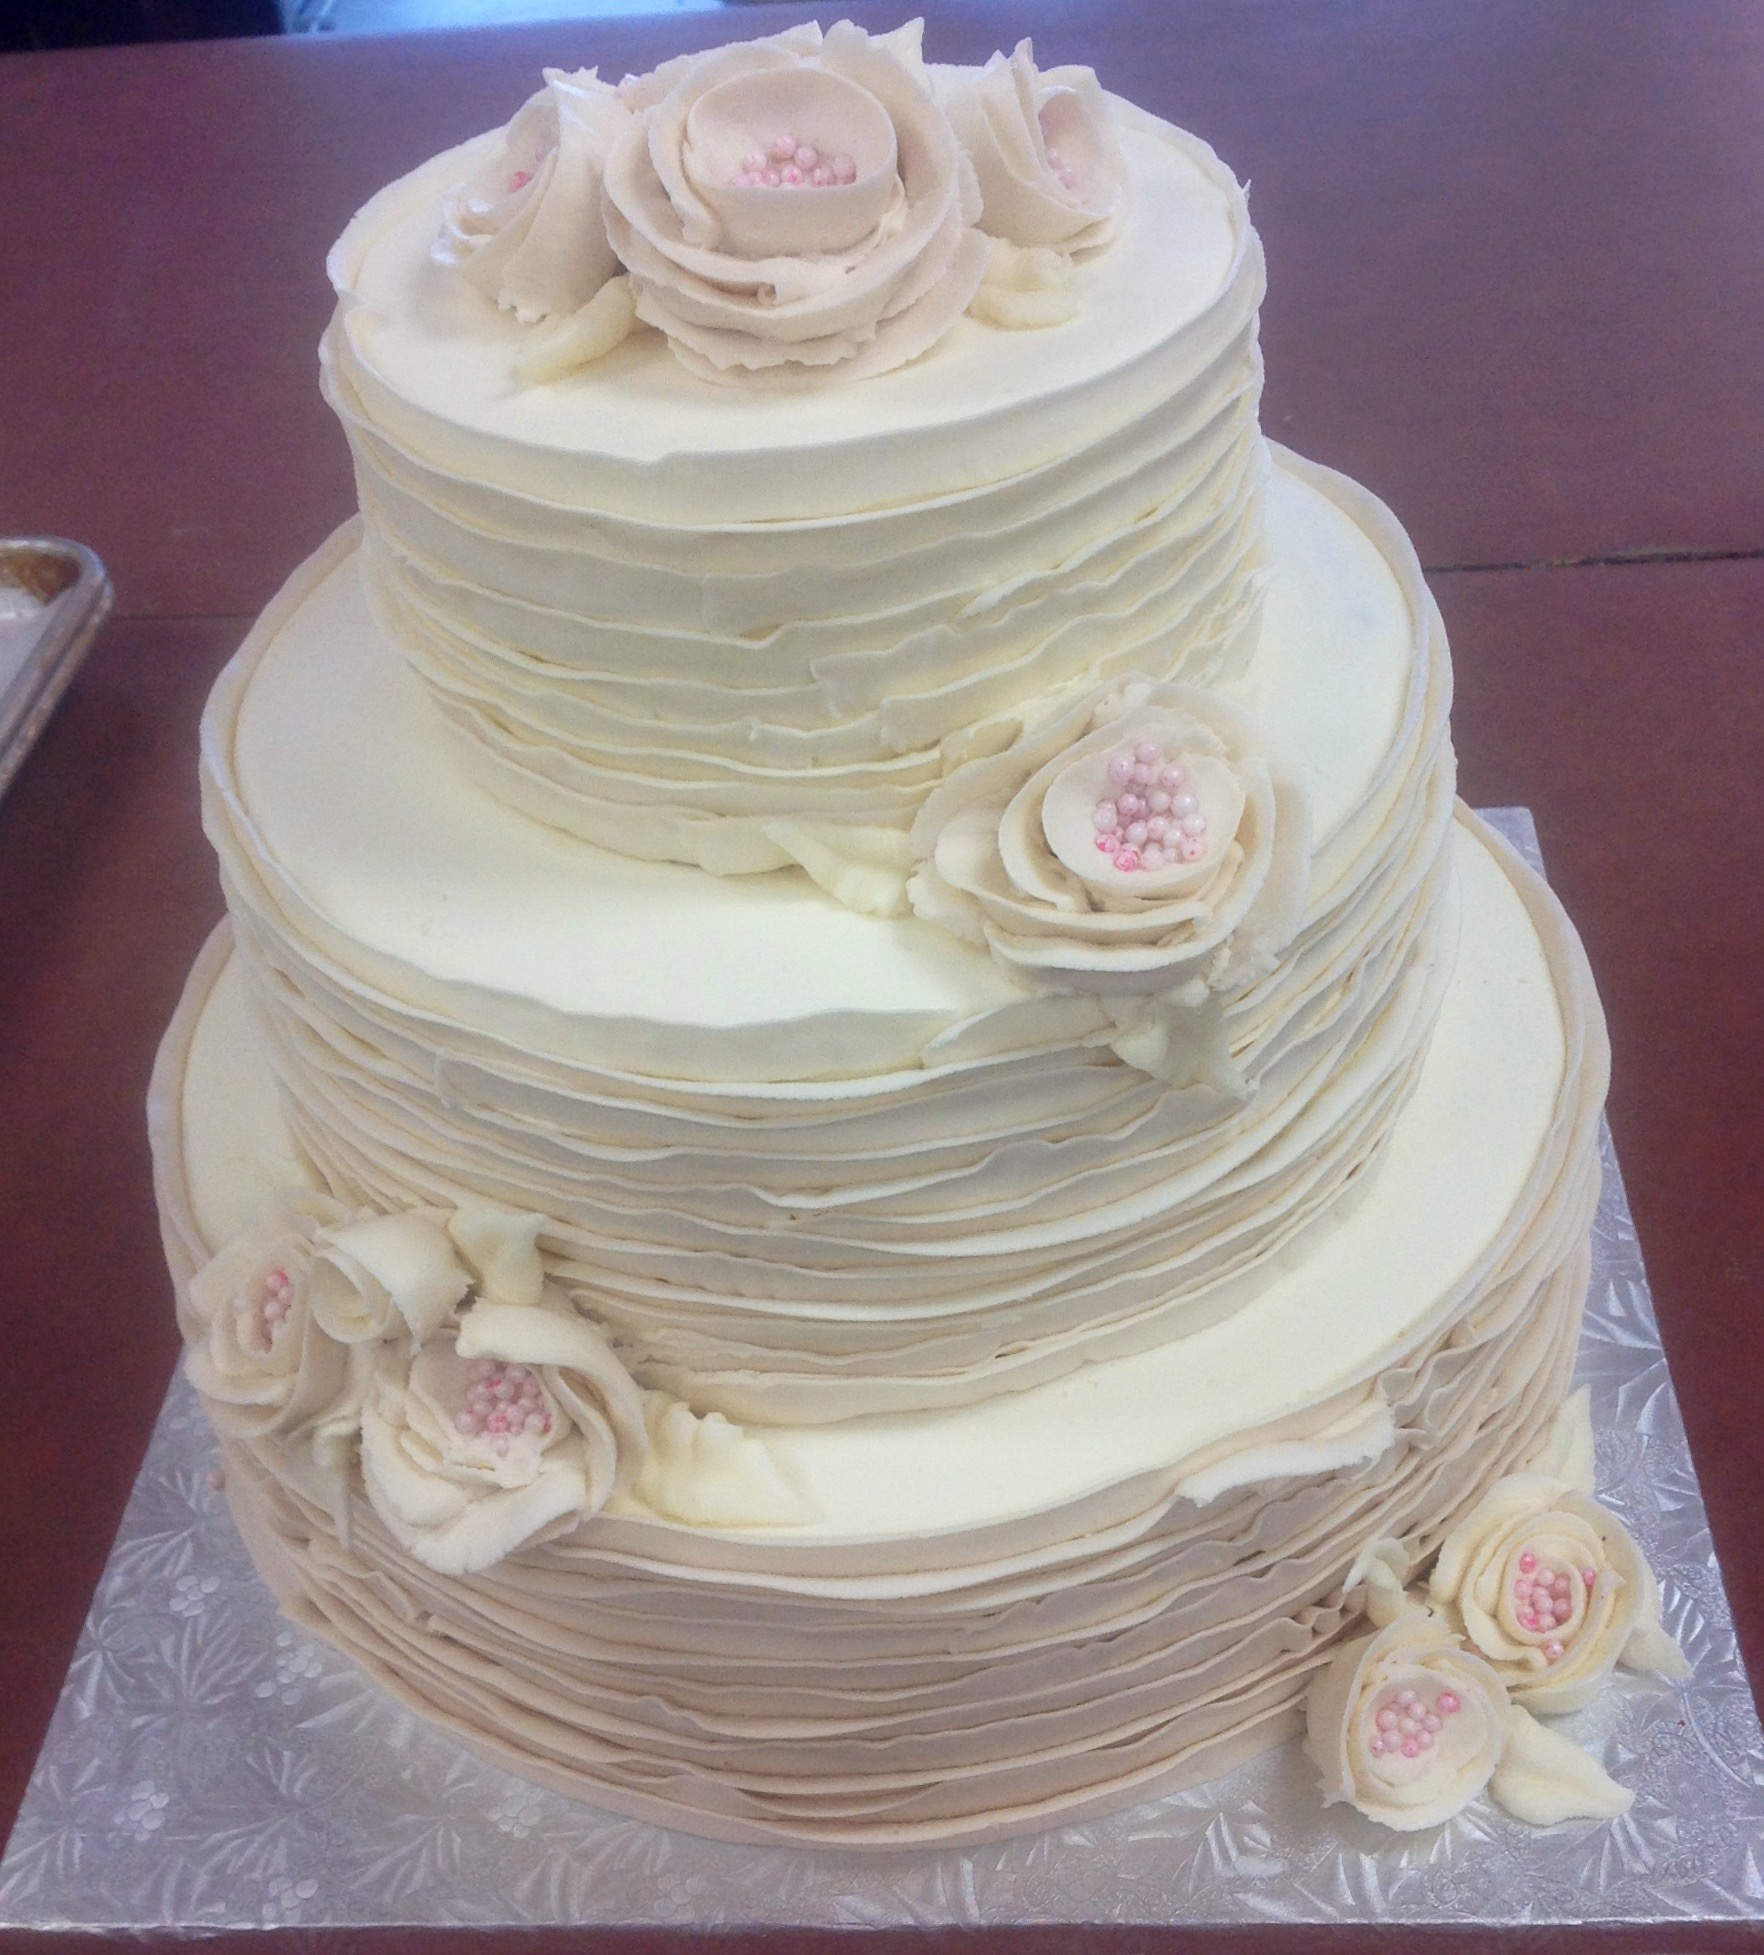 Tiered Rustic Wedding Cake with Buttercream Frosting and Flowers ...